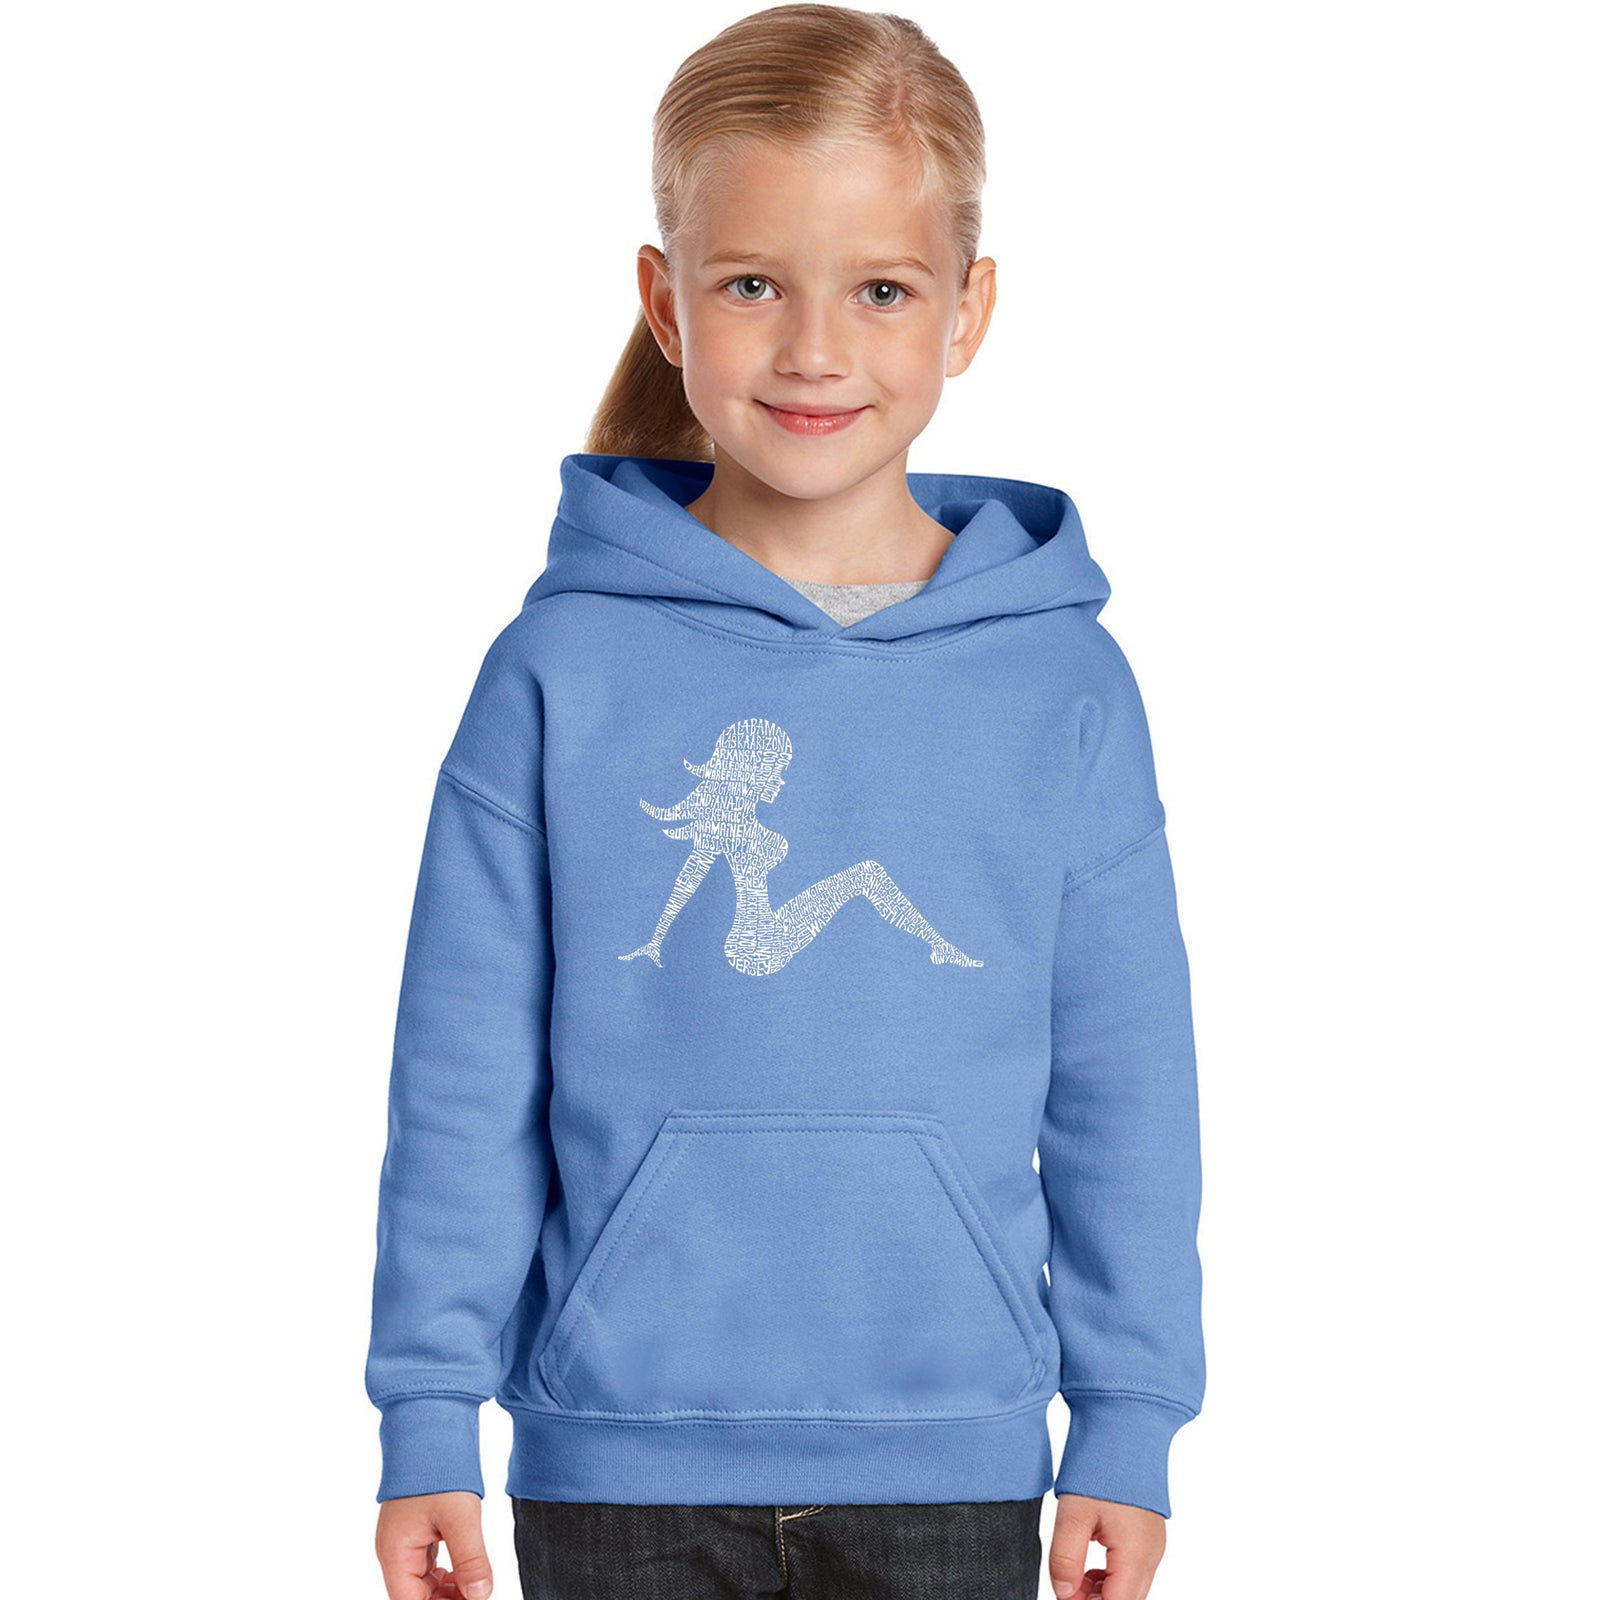 Girl's Hooded Sweatshirt - MUDFLAP GIRL